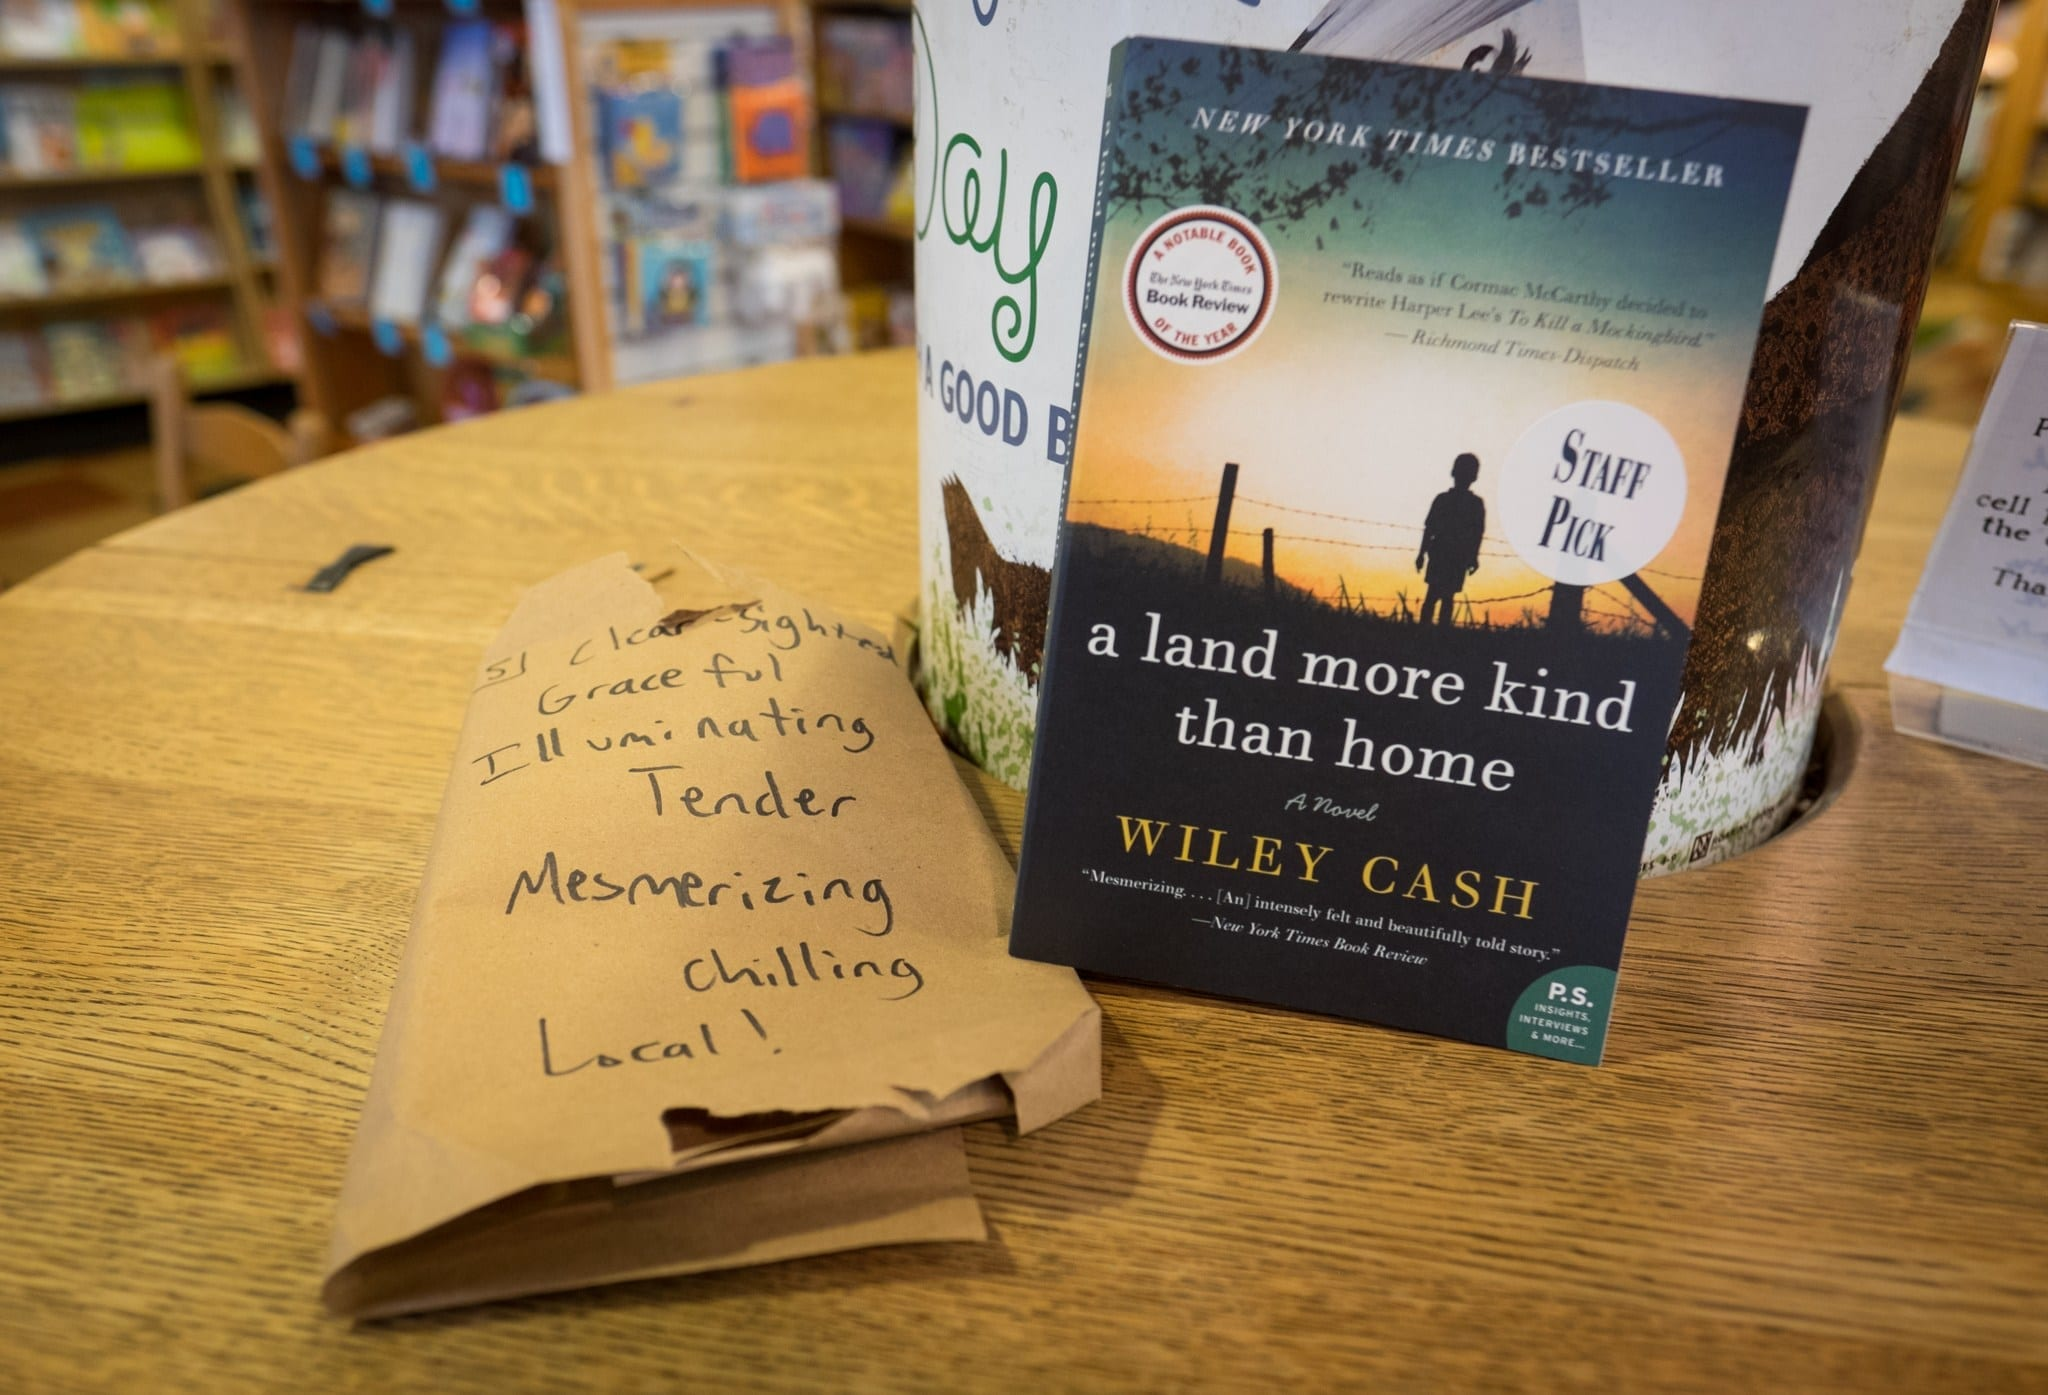 The Book Was A Land More Kind Than Home By Wiley Cash, A Native Of Western  North Carolina The Richmond Timesdispatch Said, €�reads As If Cormac  Mccarthy